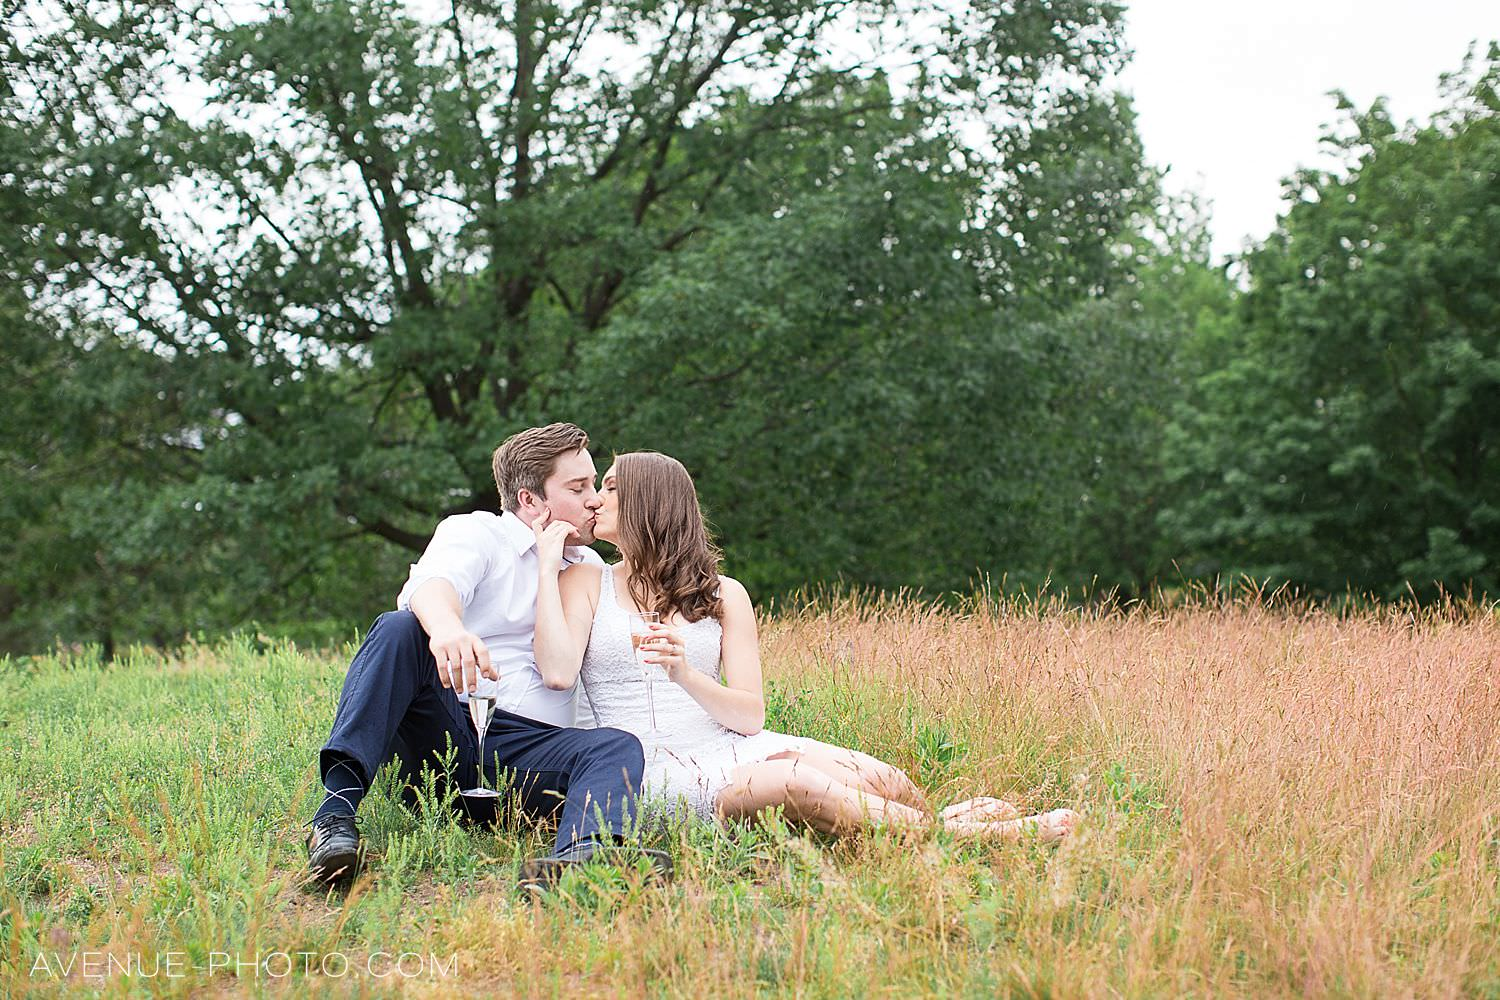 Romantic High Park Engagement Photos, Toronto Engagement Photos, High Park, Avenue Photo